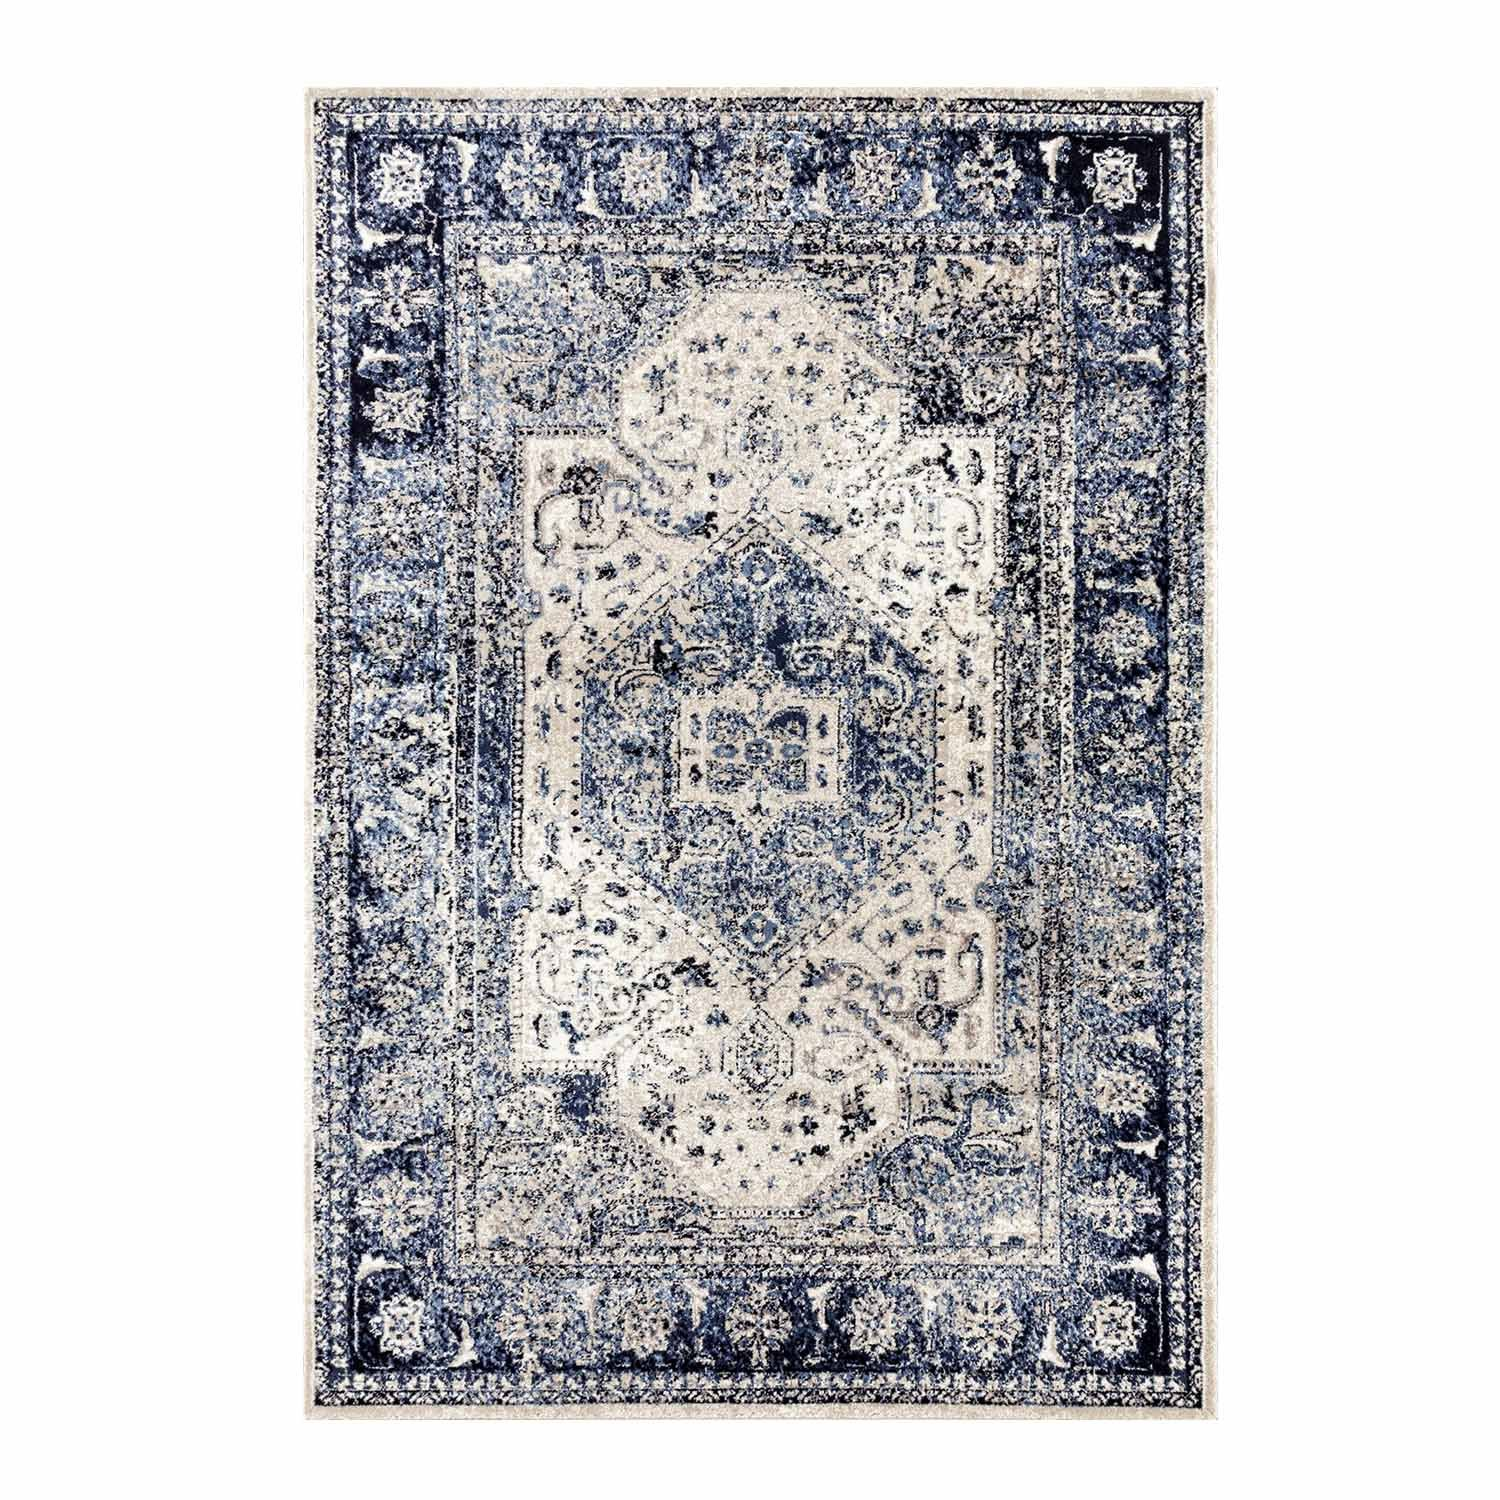 Ladole Rugs Anatolia Collection Beautiful European Smooth Area Rug Carpet in Blue Ivory, 2x3 (2' x 3'3, 60cm x 100cm) 2x3 (2' x 3'3